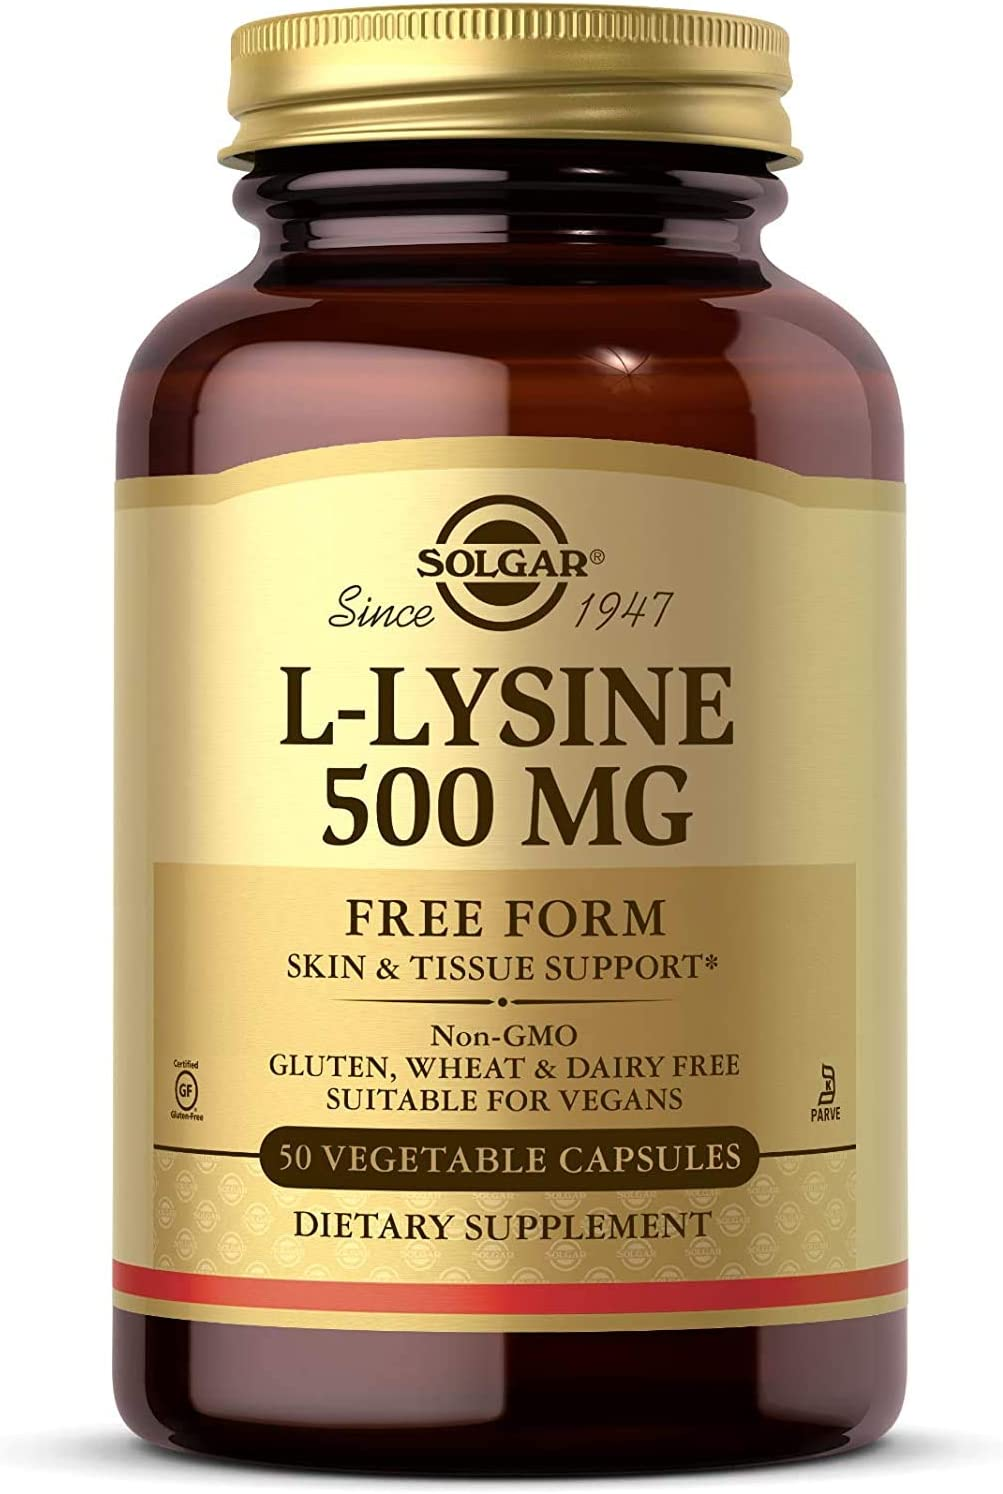 Solgar L-Lysine Vegetable Capsules, 500 mg, 250 Count – Supports Healthy Skin and Lips: Health & Personal Care